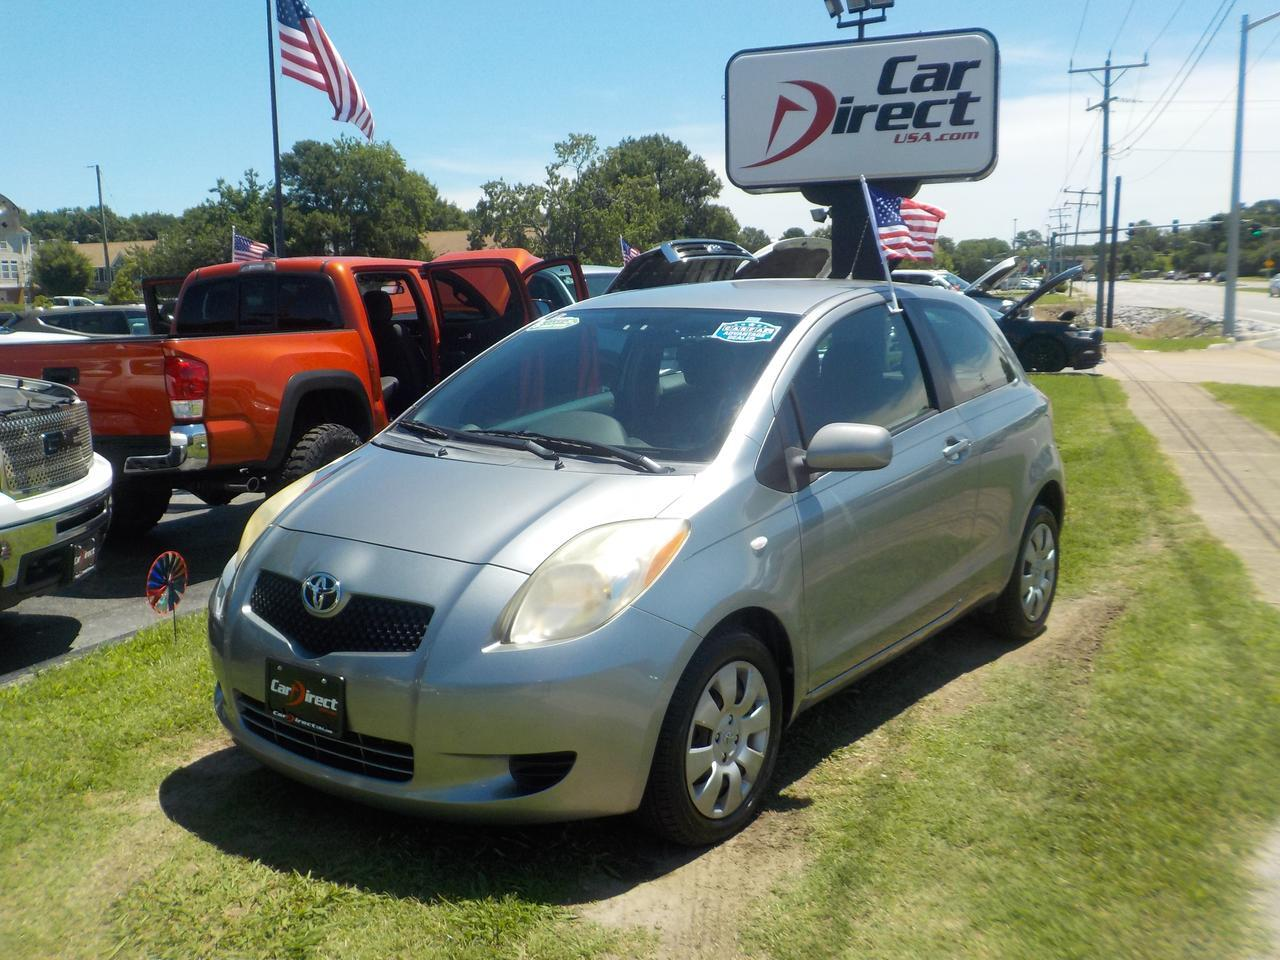 2007 TOYOTA YARIS HATCHBACK, WARRANTY, CD PLAYER, FWD, A/C, LOW MILES, GREAT CONDITION!